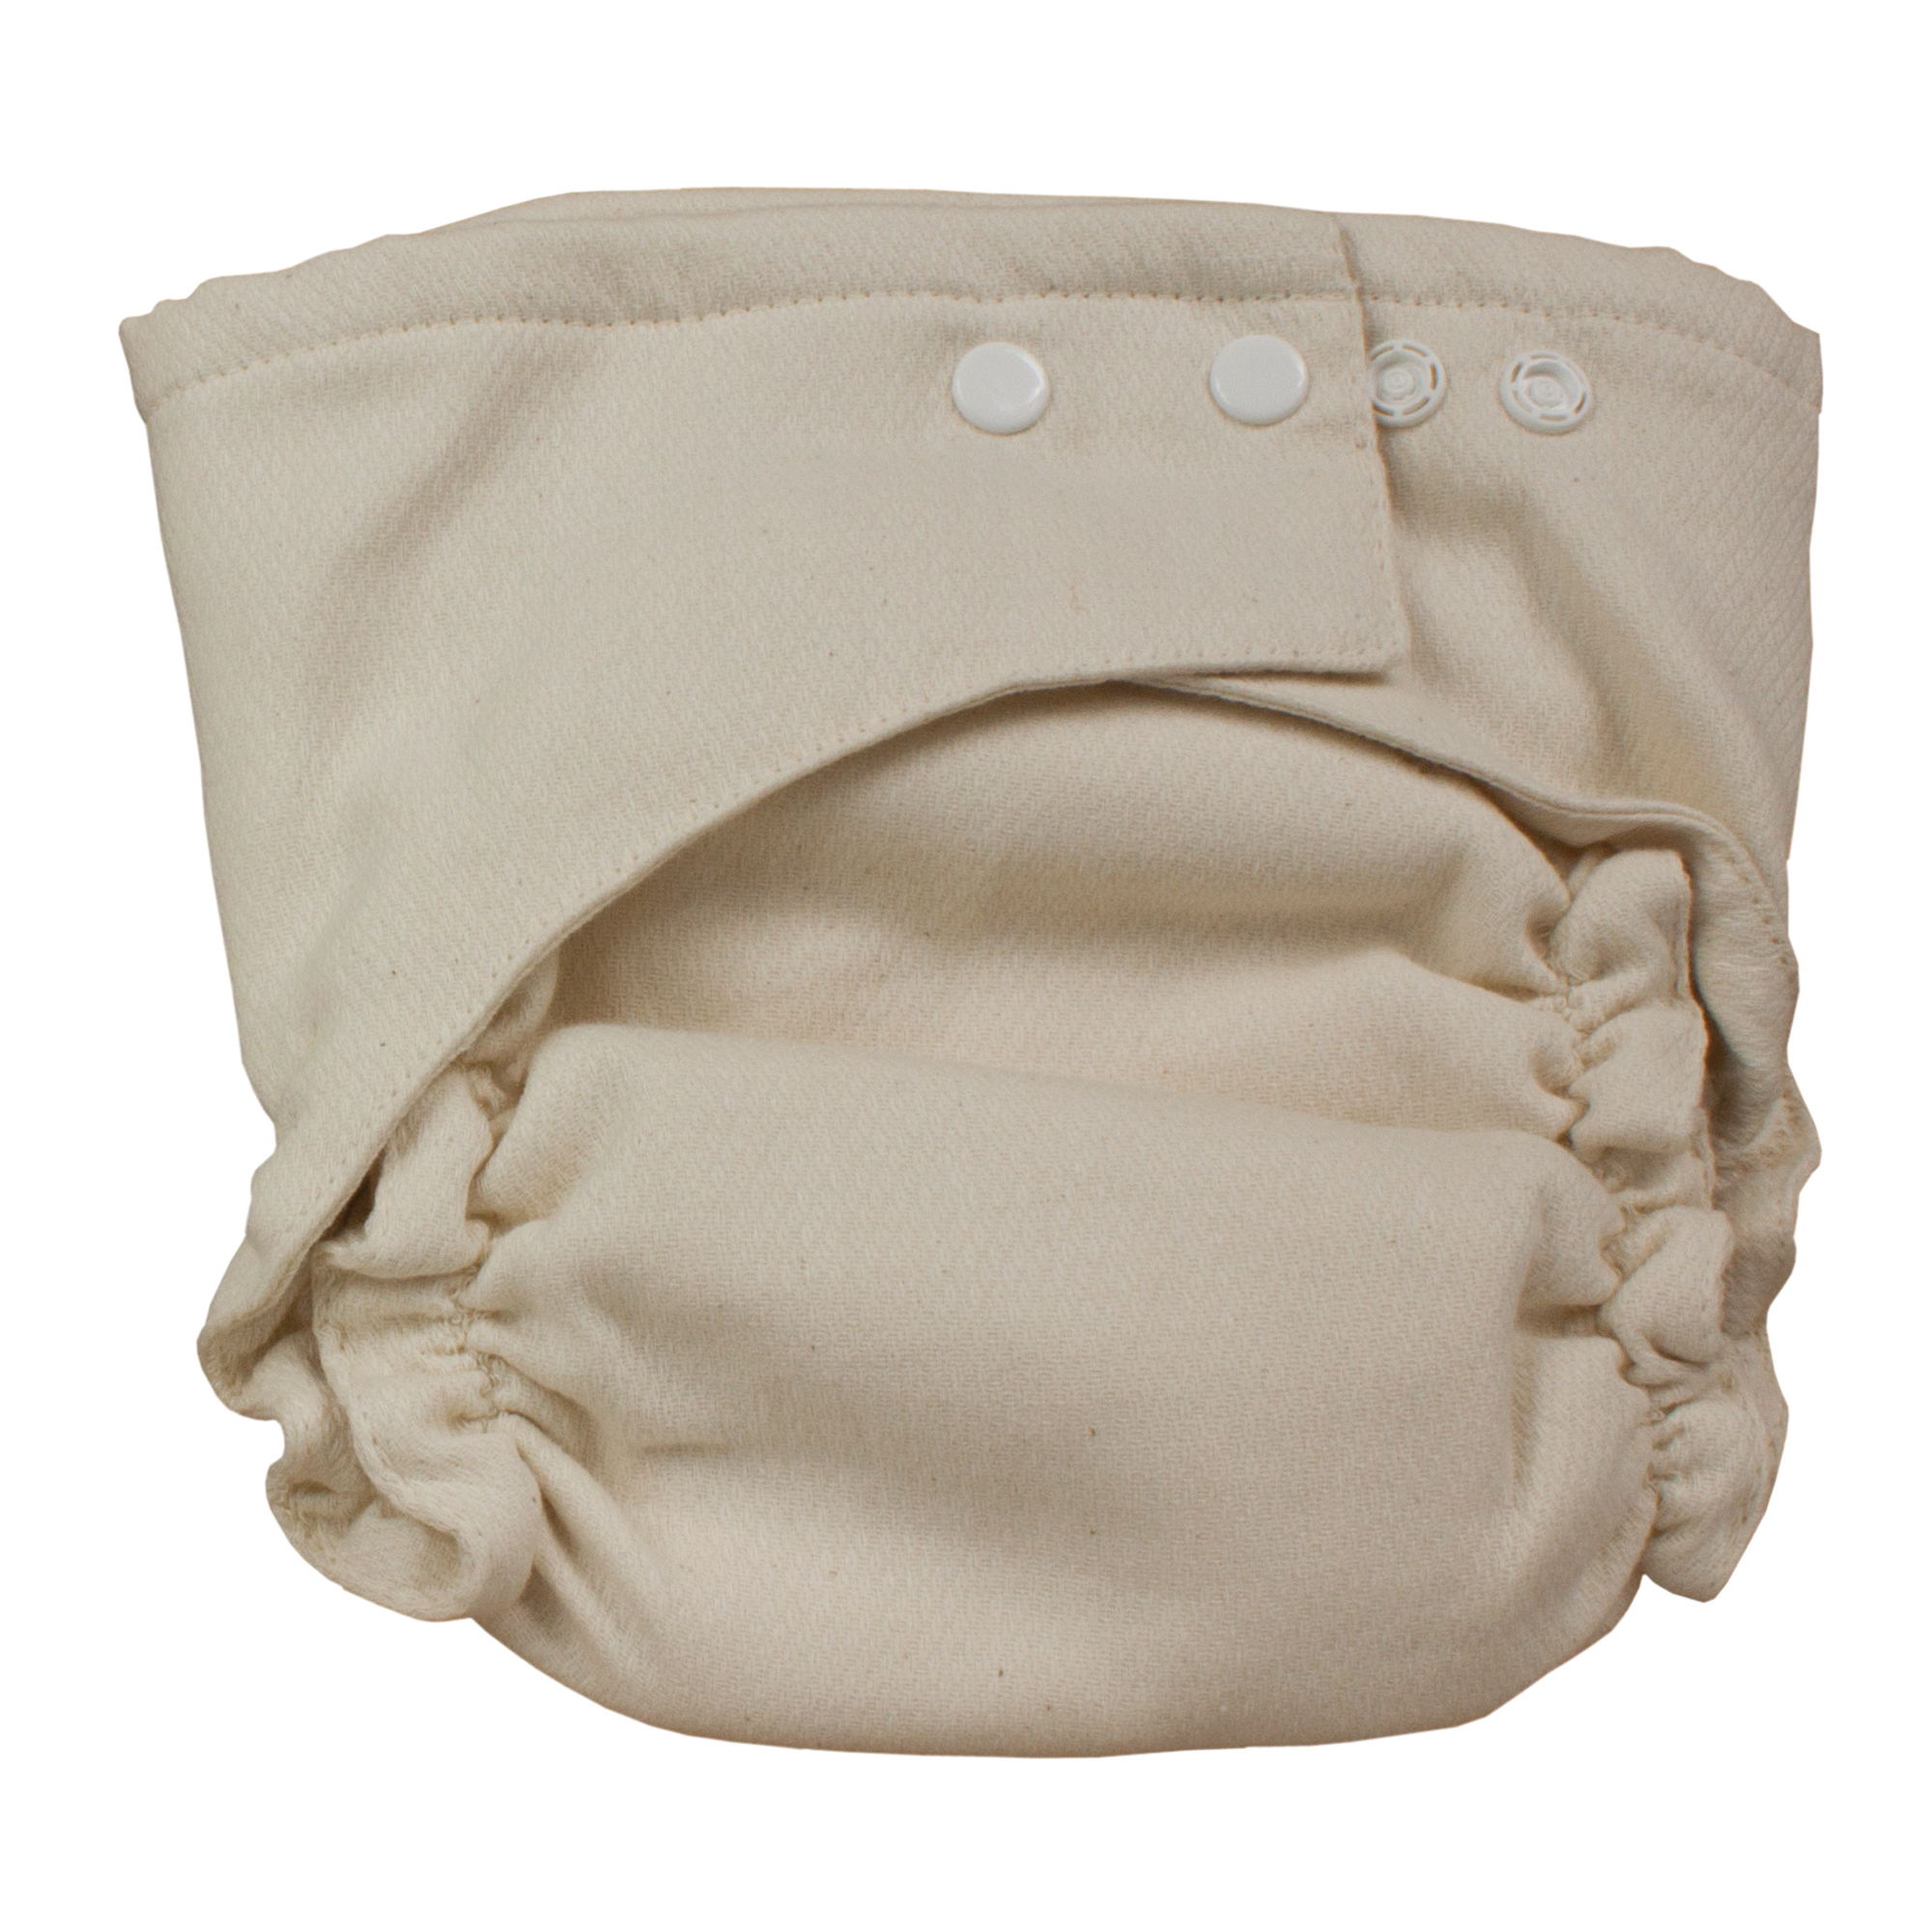 Osocozy Two Sized Unbleached Fitted Diaper, 6 pack - Size 2